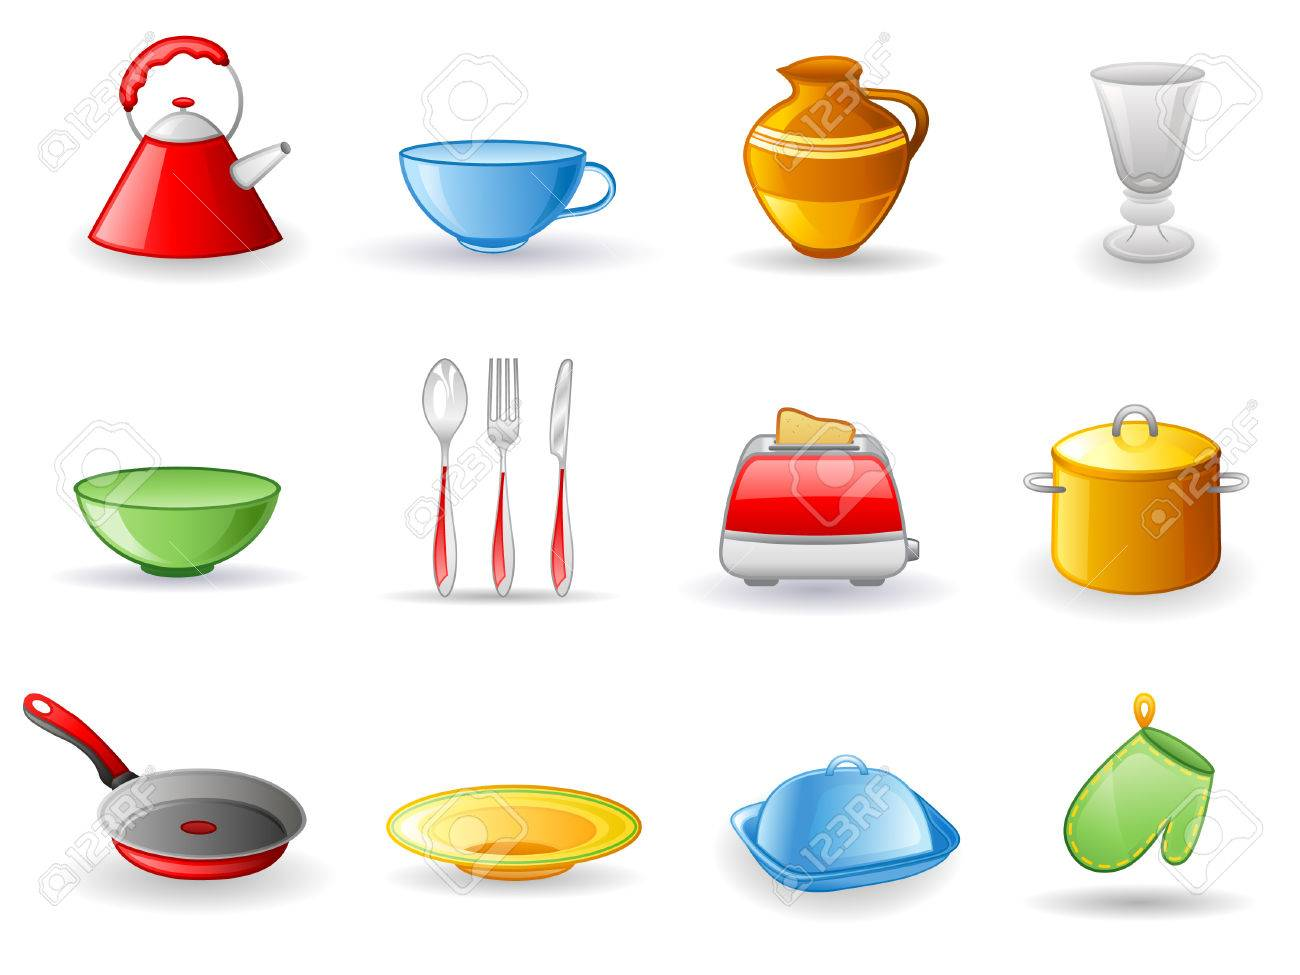 Kitchen utensil icon set.  Isolated on a white background. Stock Vector - 7178881